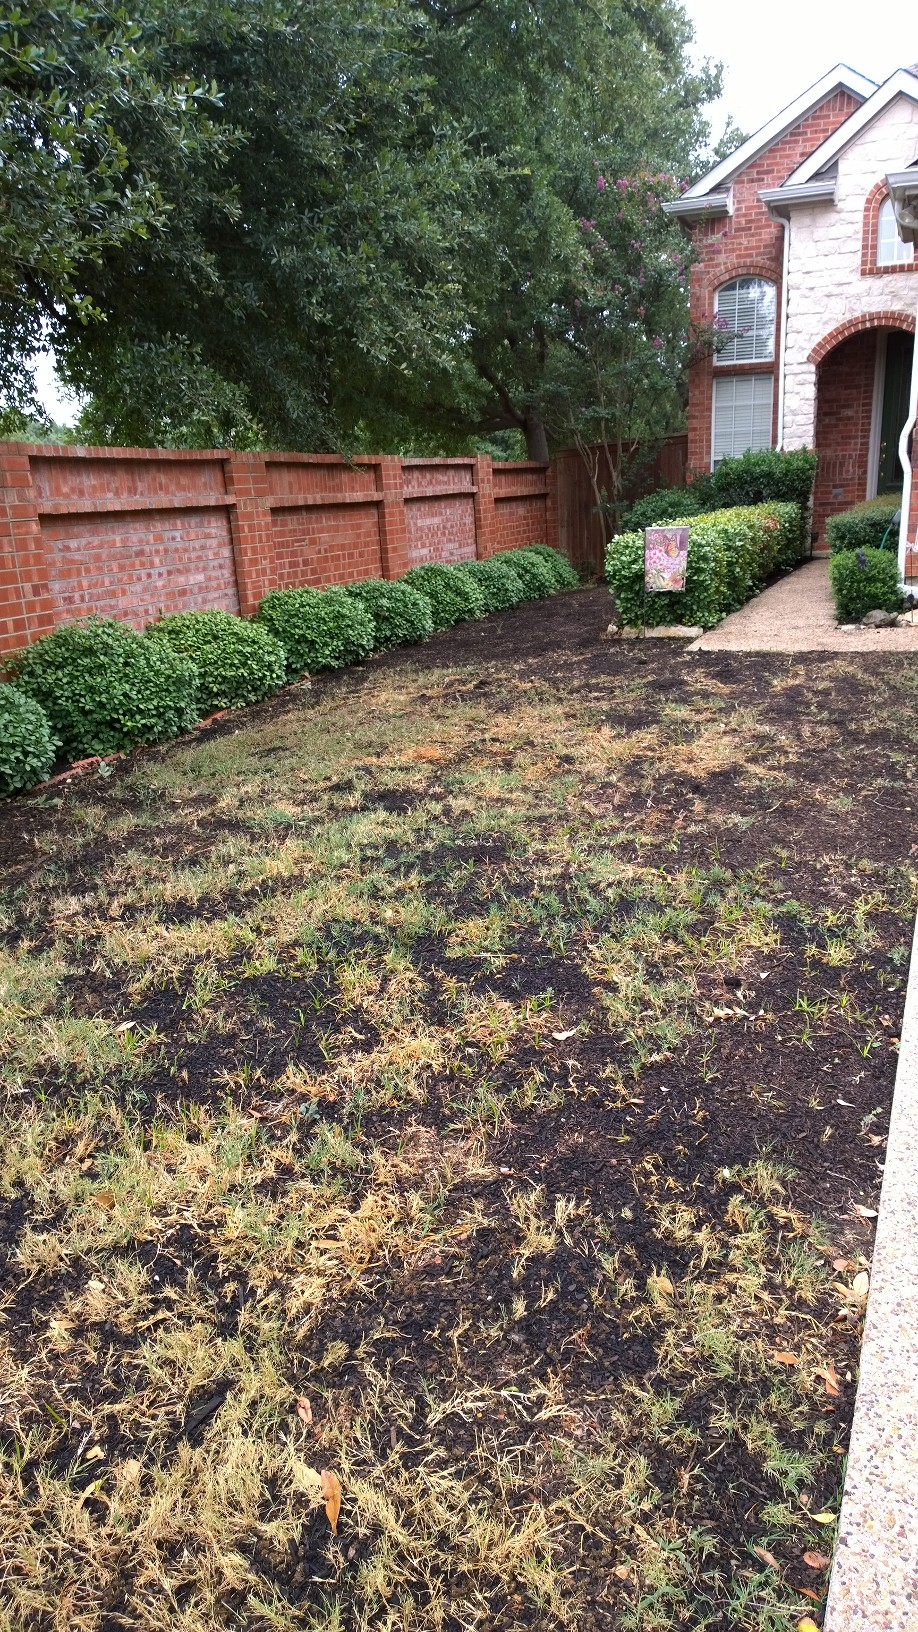 John I Have A Friend In Irving Texas Who Wants To Start Using Organics On Her Yard Some Of Your Compost Was Brought Up From Houston Try It